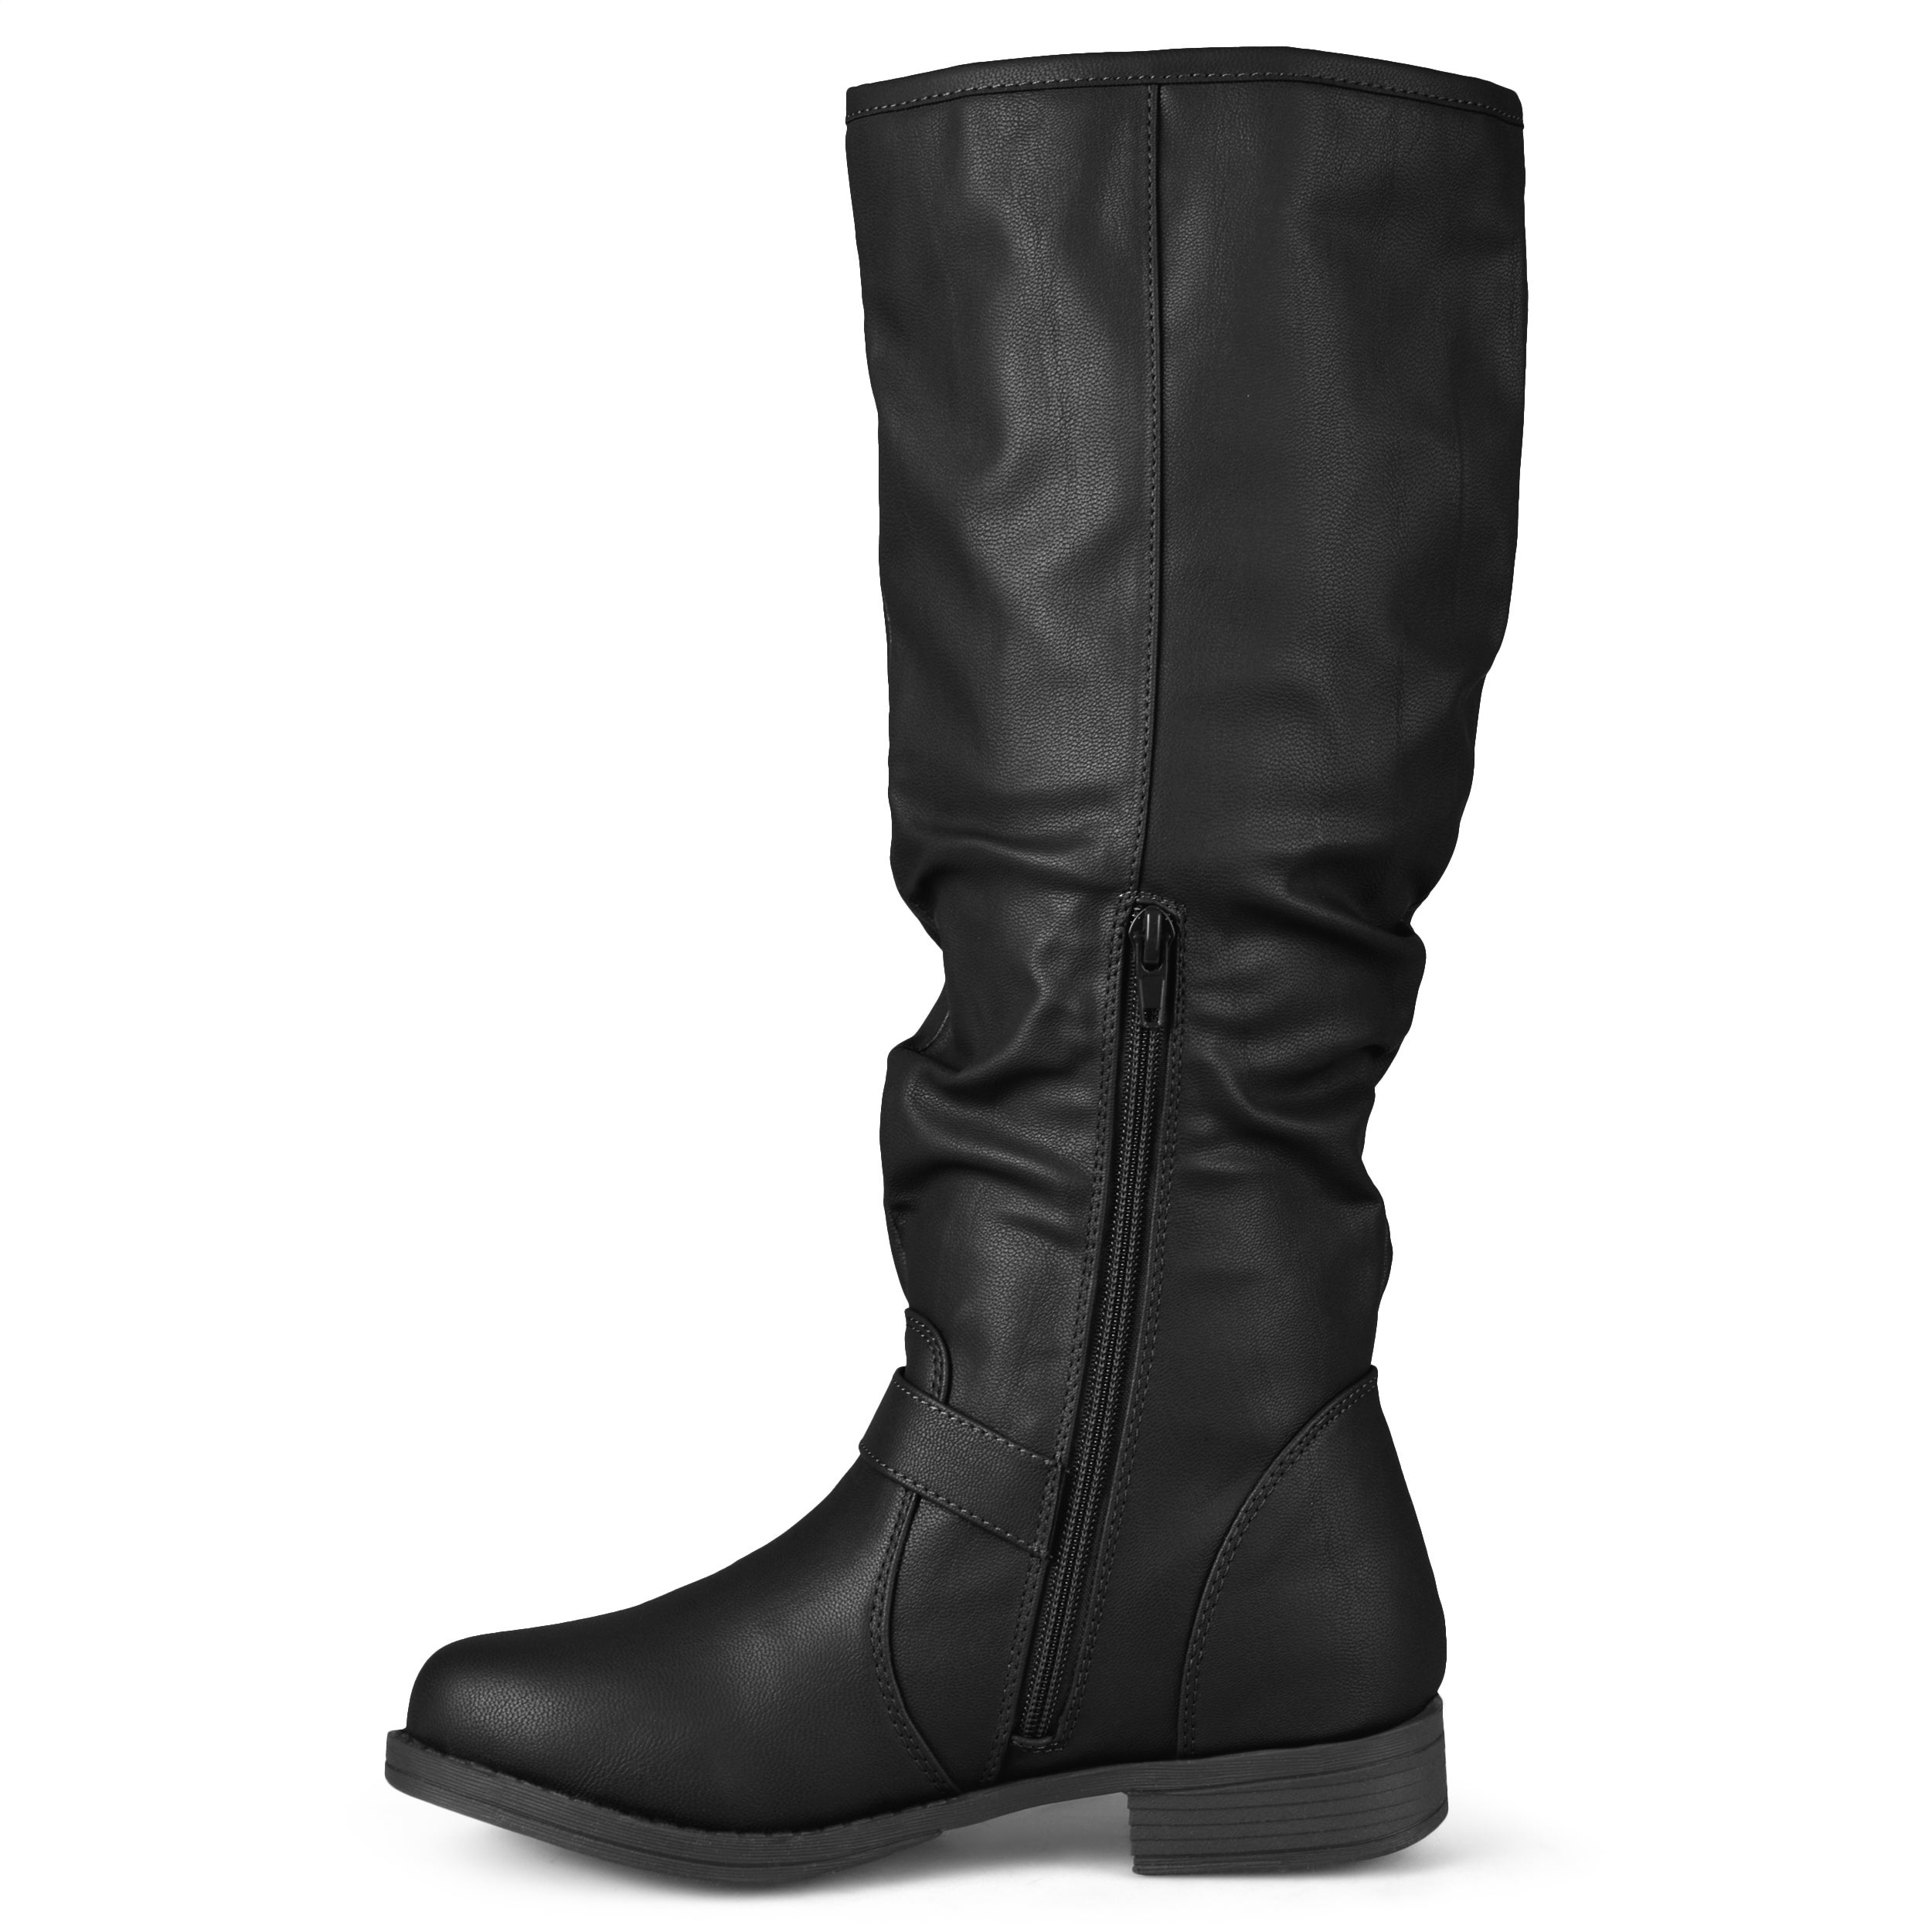 43a8a49978a Journee Collection Women s Extra Wide-Calf  Stormy  Knee-High Buckle ...